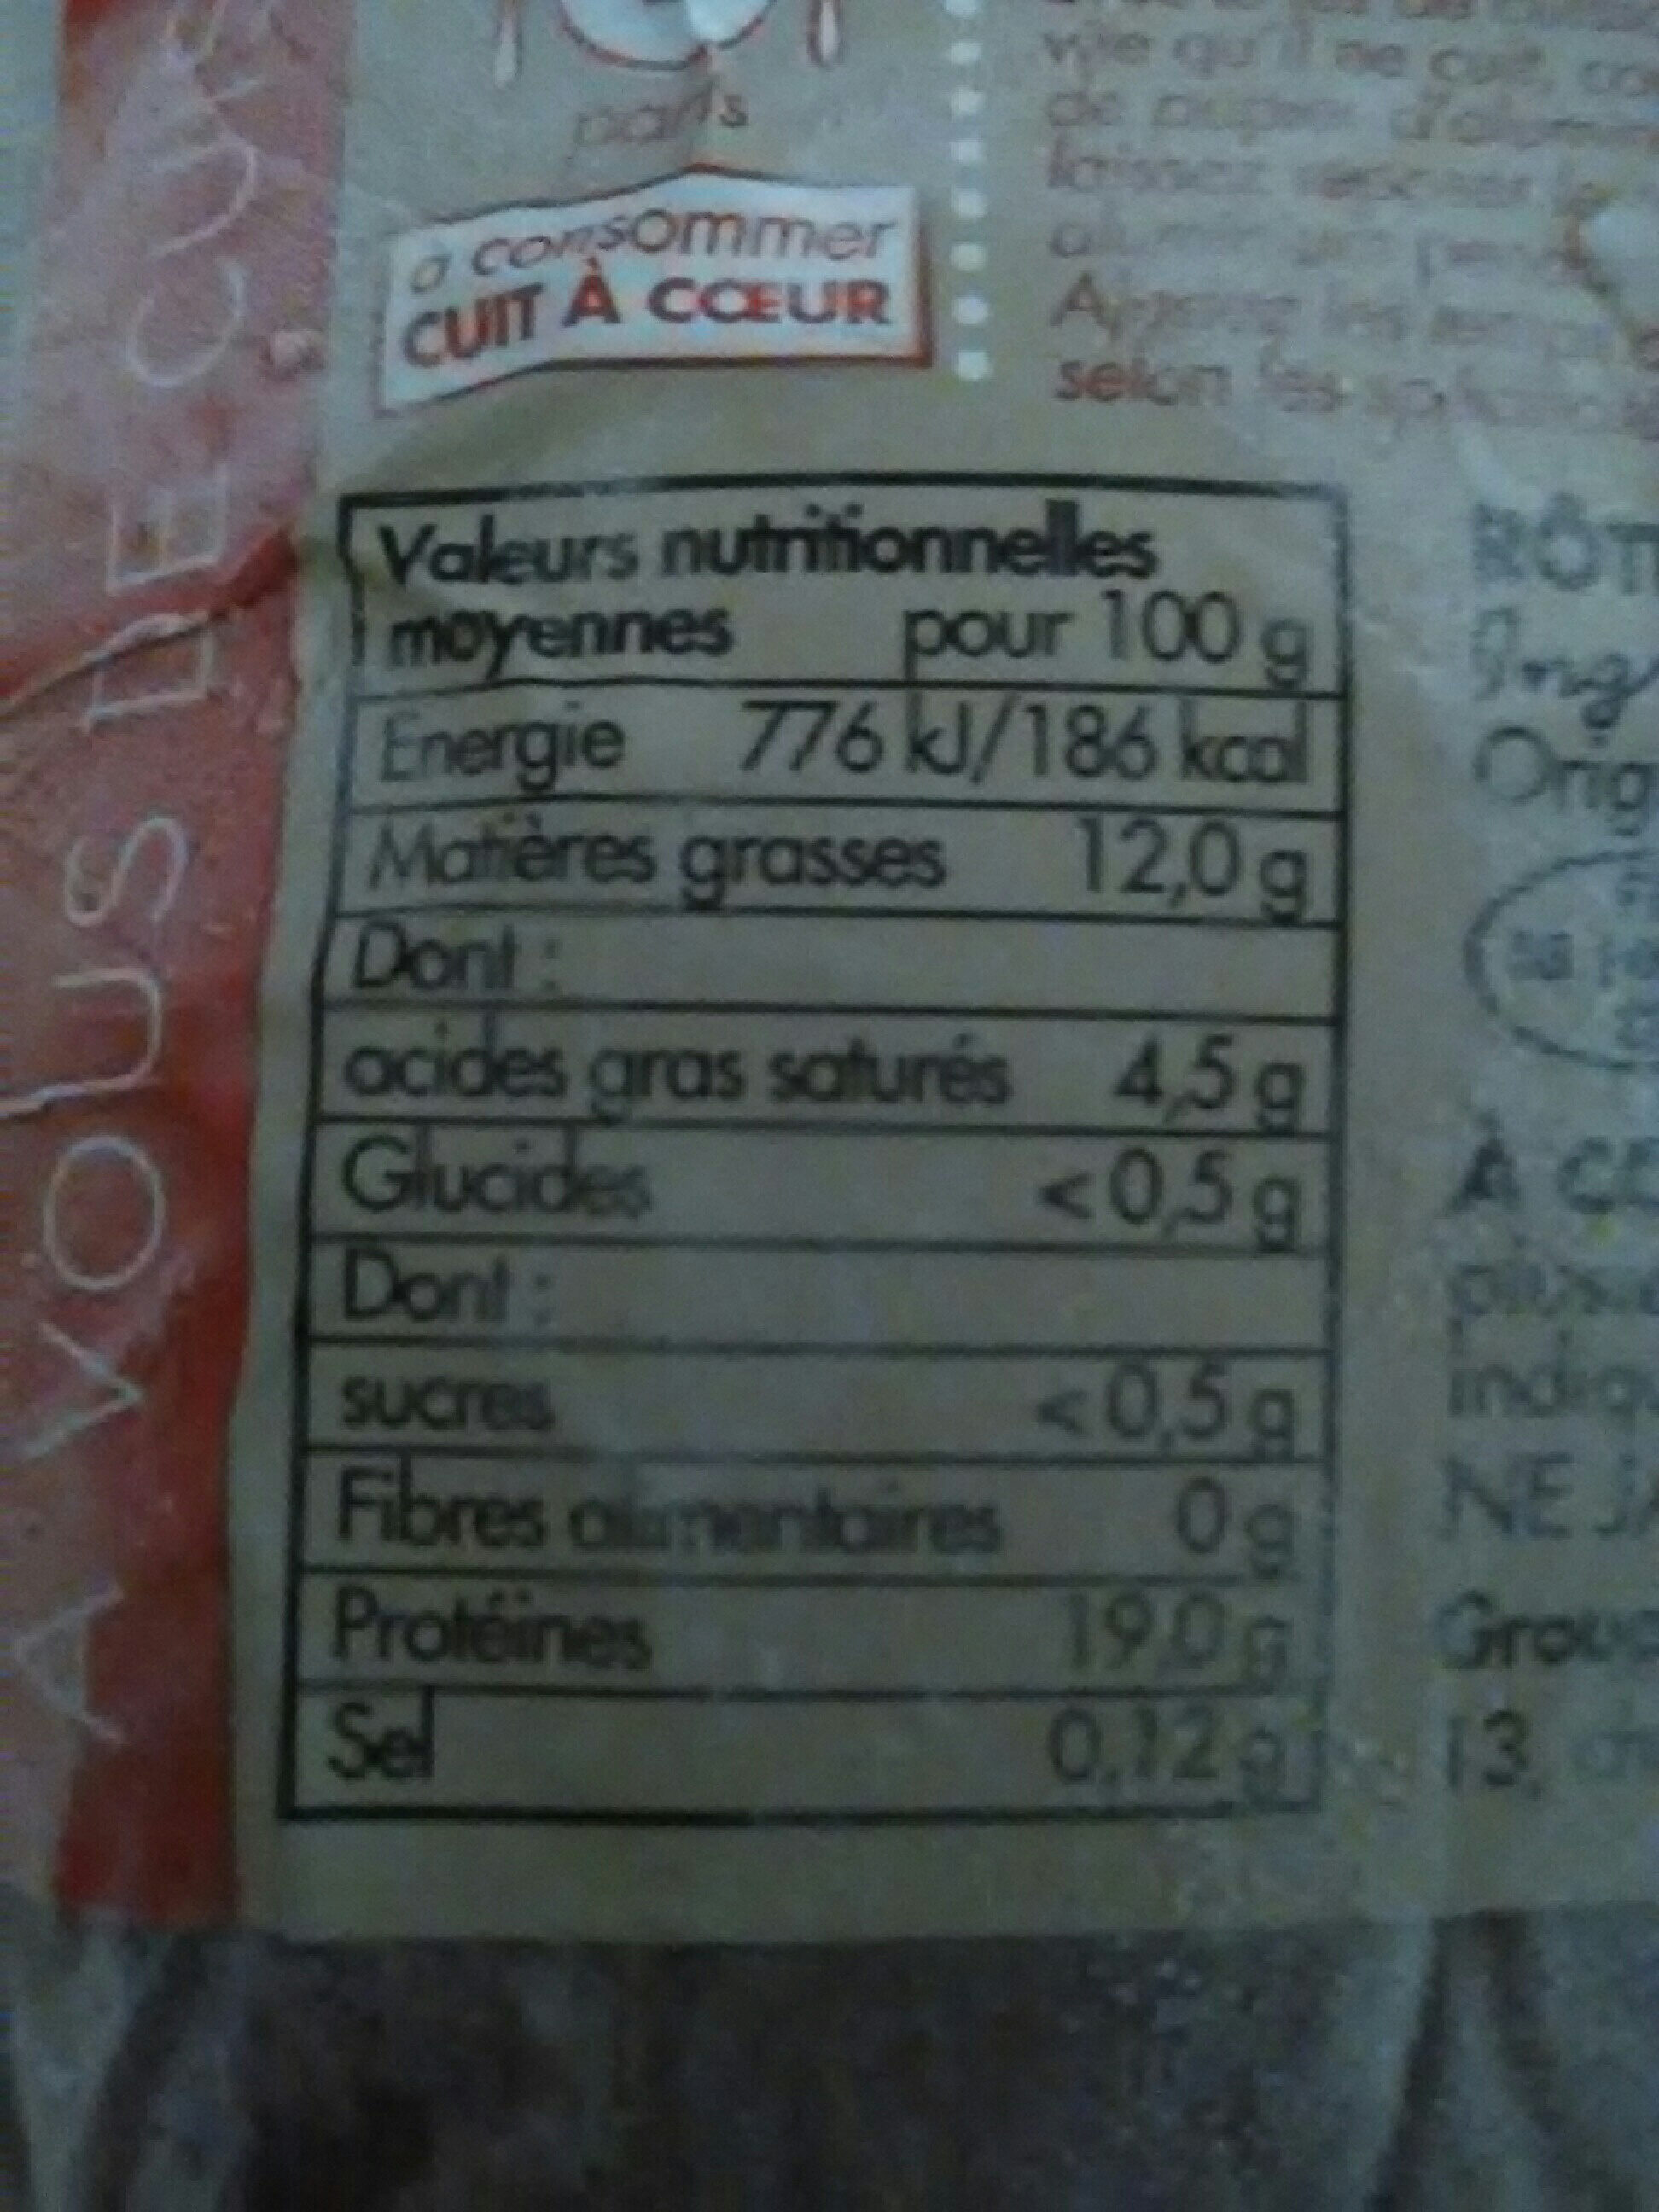 rôti de porc français - Nutrition facts